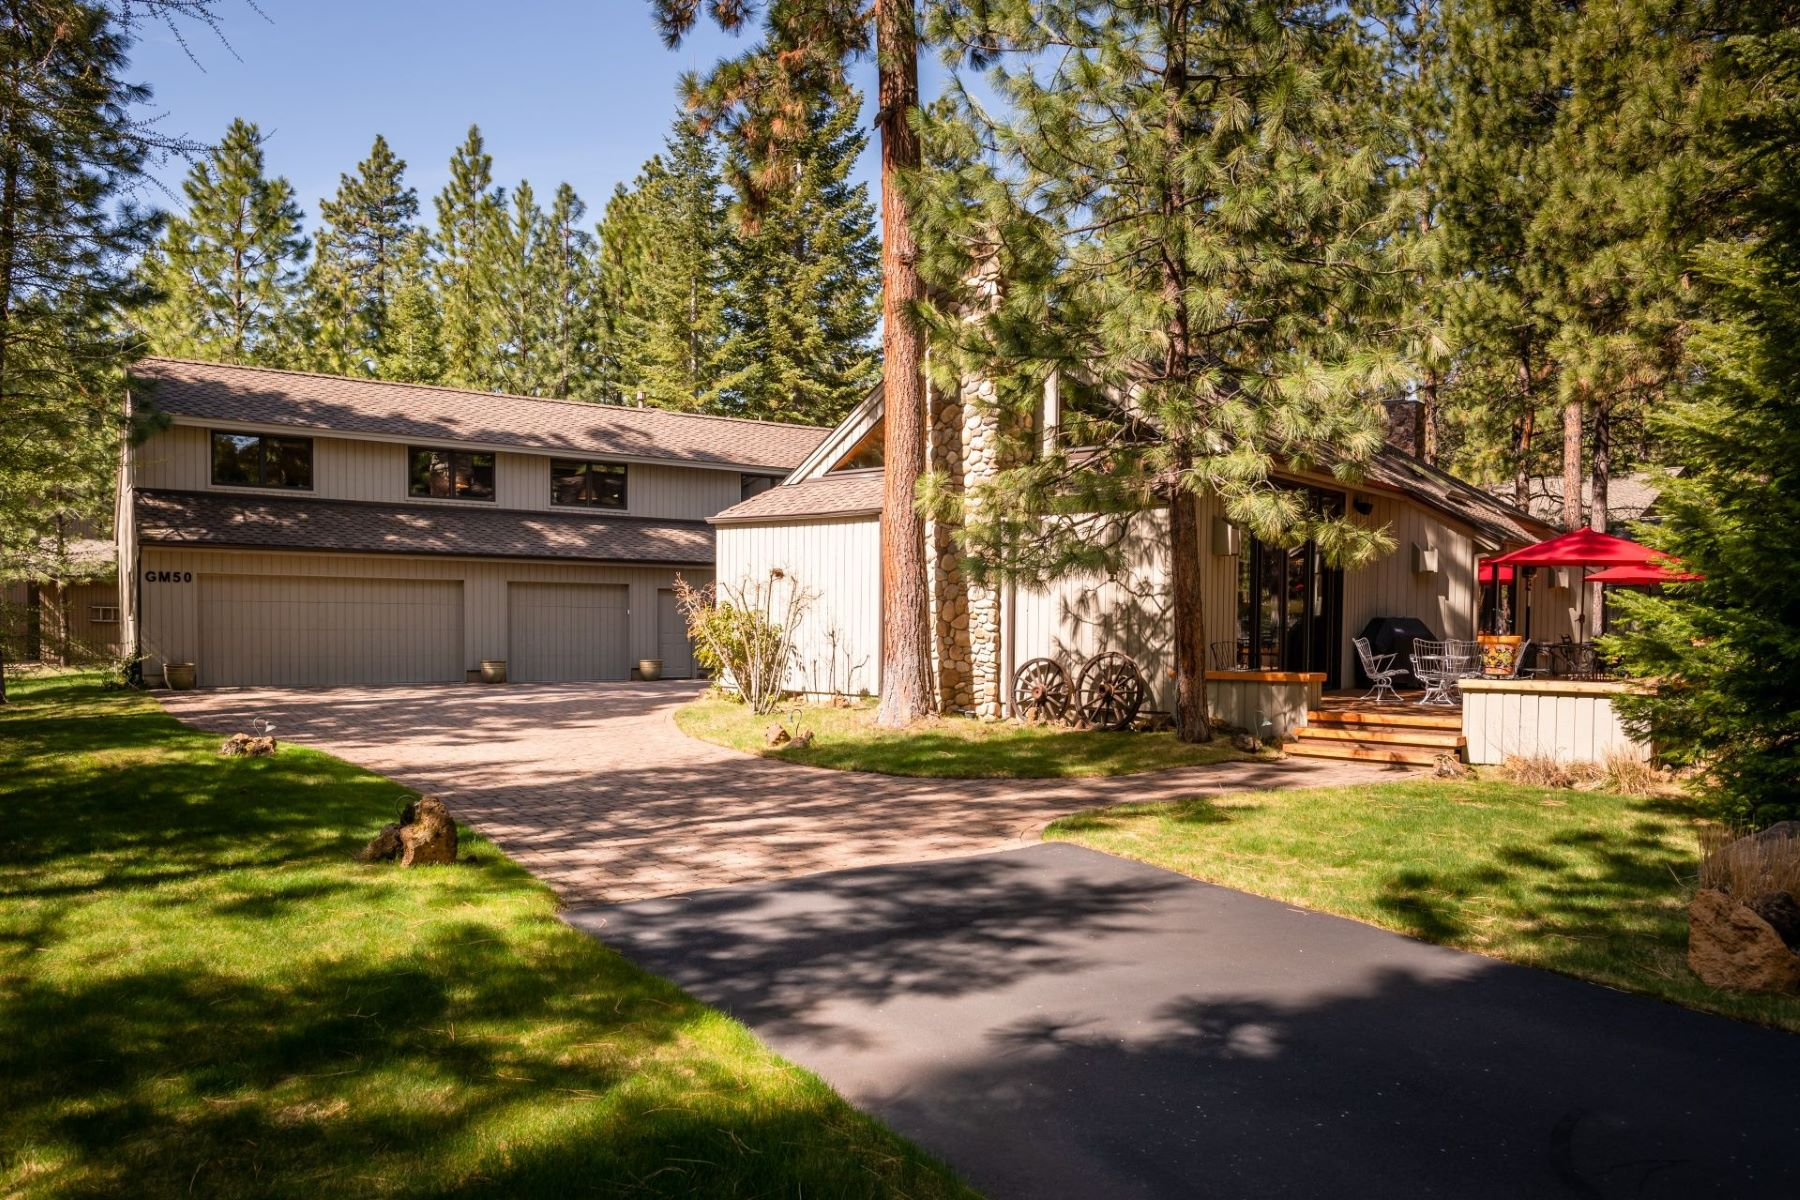 Other Residential Homes for Active at 13745 Ground Fir #GM50 Black Butte Ranch, OR 97759 13745 Ground Fir #GM50 Black Butte Ranch, Oregon 97759 United States